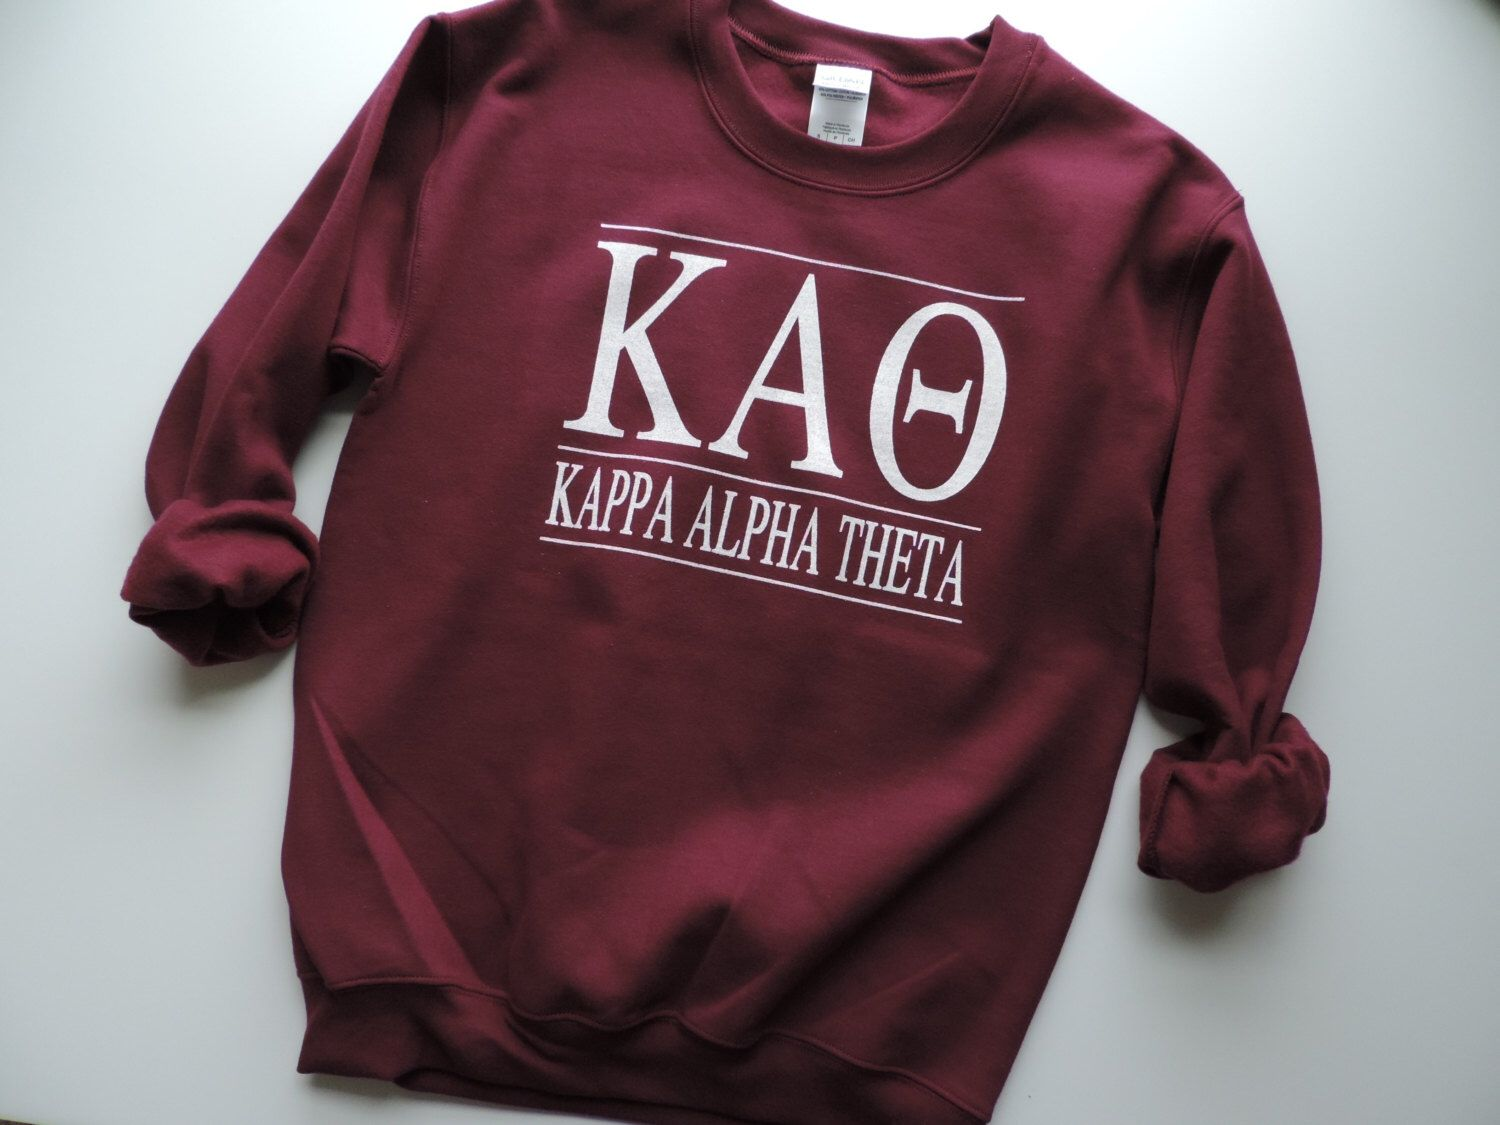 Color printing purdue - New Kappa Alpha Theta Maroon More Stripe Crewneck Sweatshirt Size You Pick Color